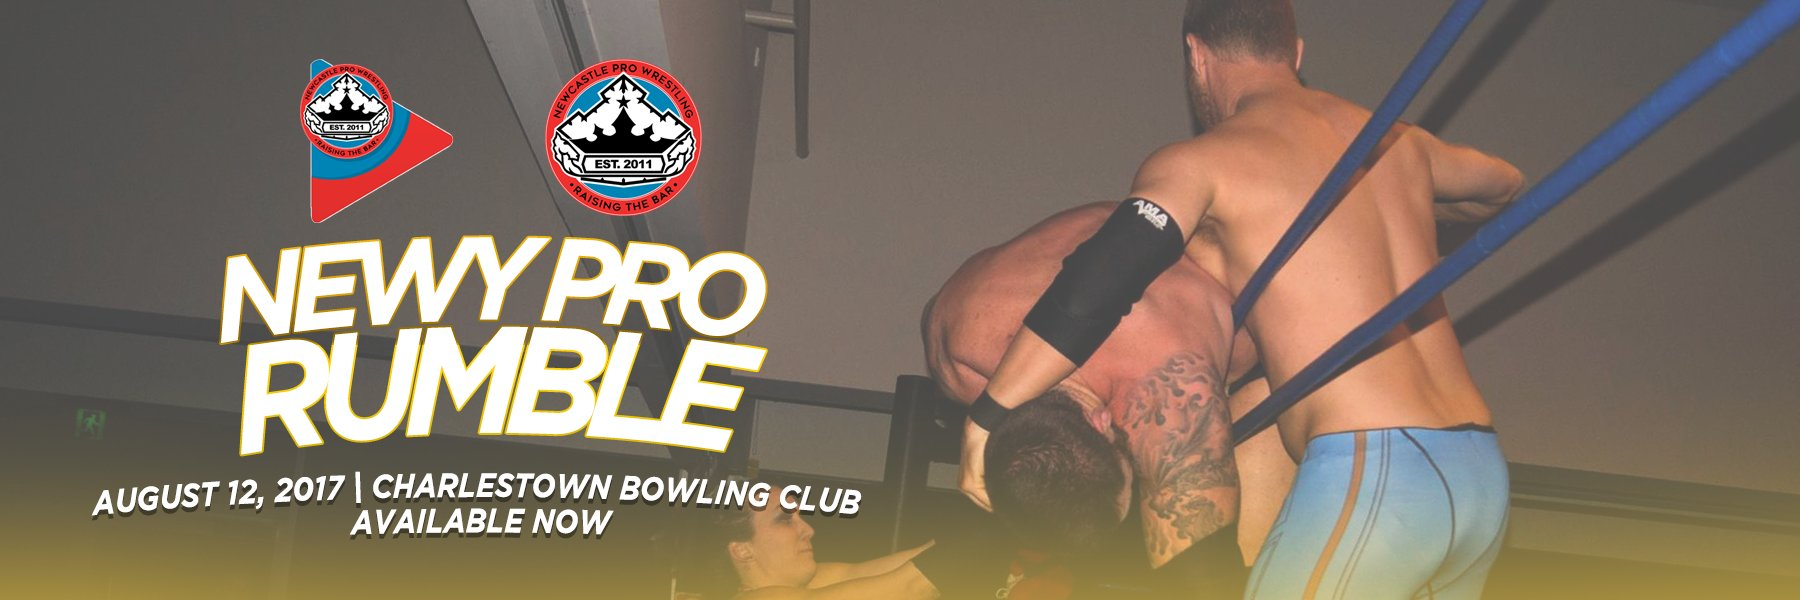 Newcastle Pro Wrestling presents NEWY PRO RUMBLE!